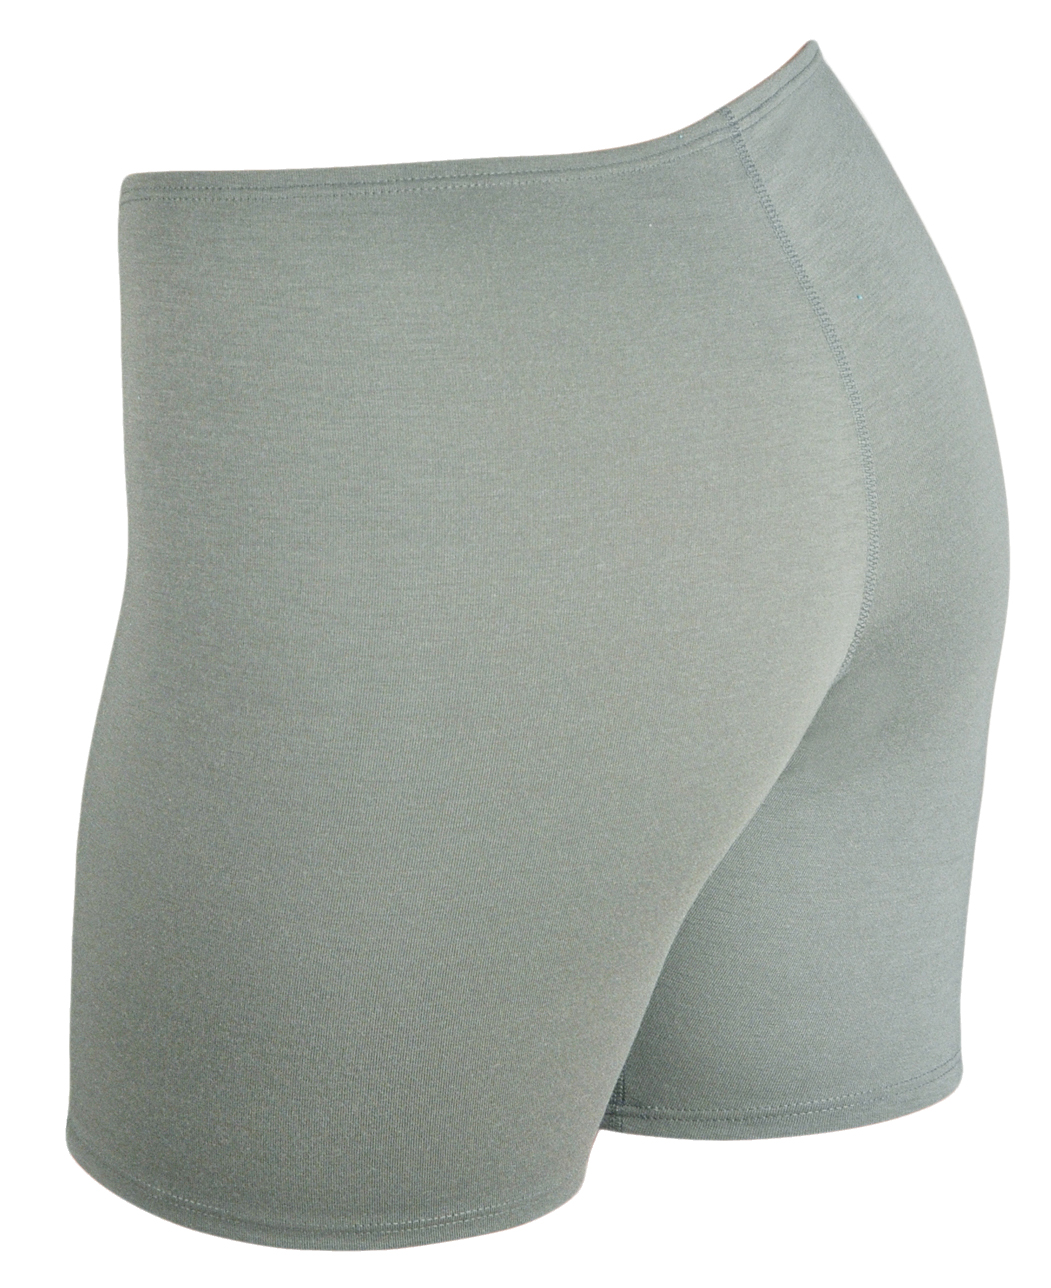 SMARTY PANTS Underwear For Active Women